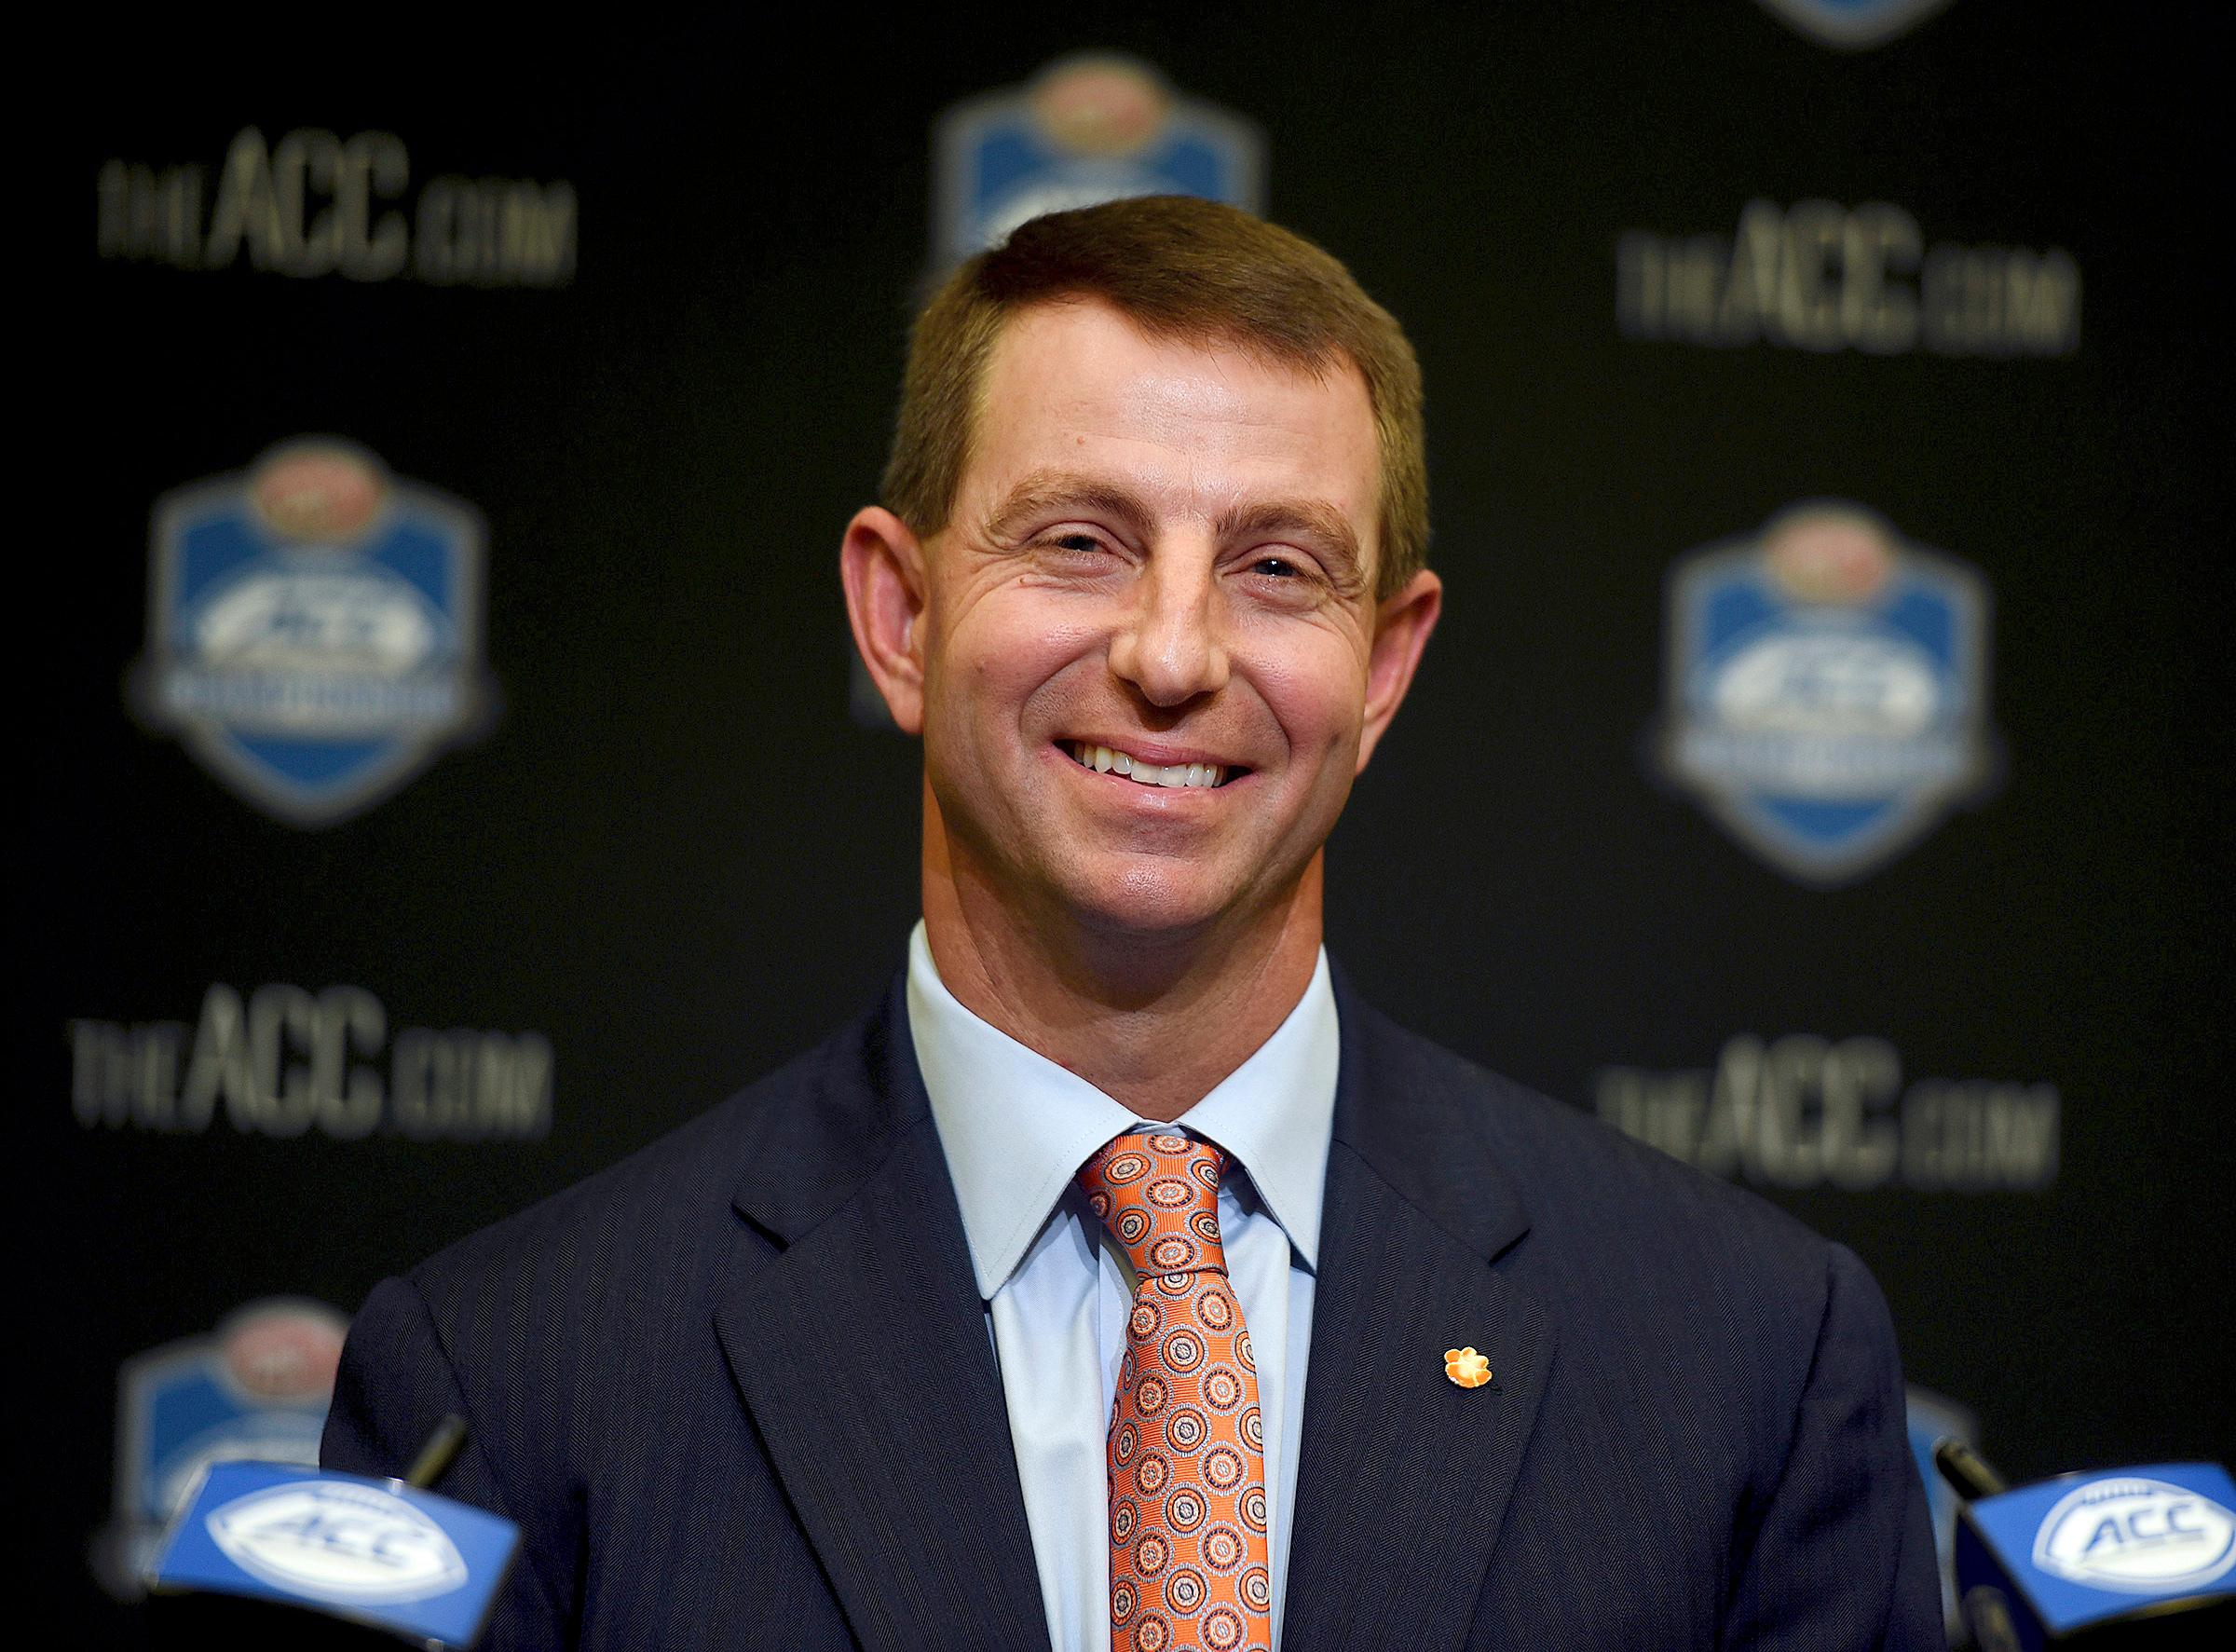 FILE - In a Dec. 1, 2017 file photo, Clemson coach Dabo Swinney smiles during an NCAA college football press conferences for the Atlantic Coast Conference championship game against Miami at Bank of America Stadium. Swinney, UCF's Scott Frost and Georgia's Kirby Smart are the finalists for The Associated Press Coach of the Year award. The winner will be announced Monday, Dec. 18. (Diedra Laird/The Charlotte Observer via AP, File)